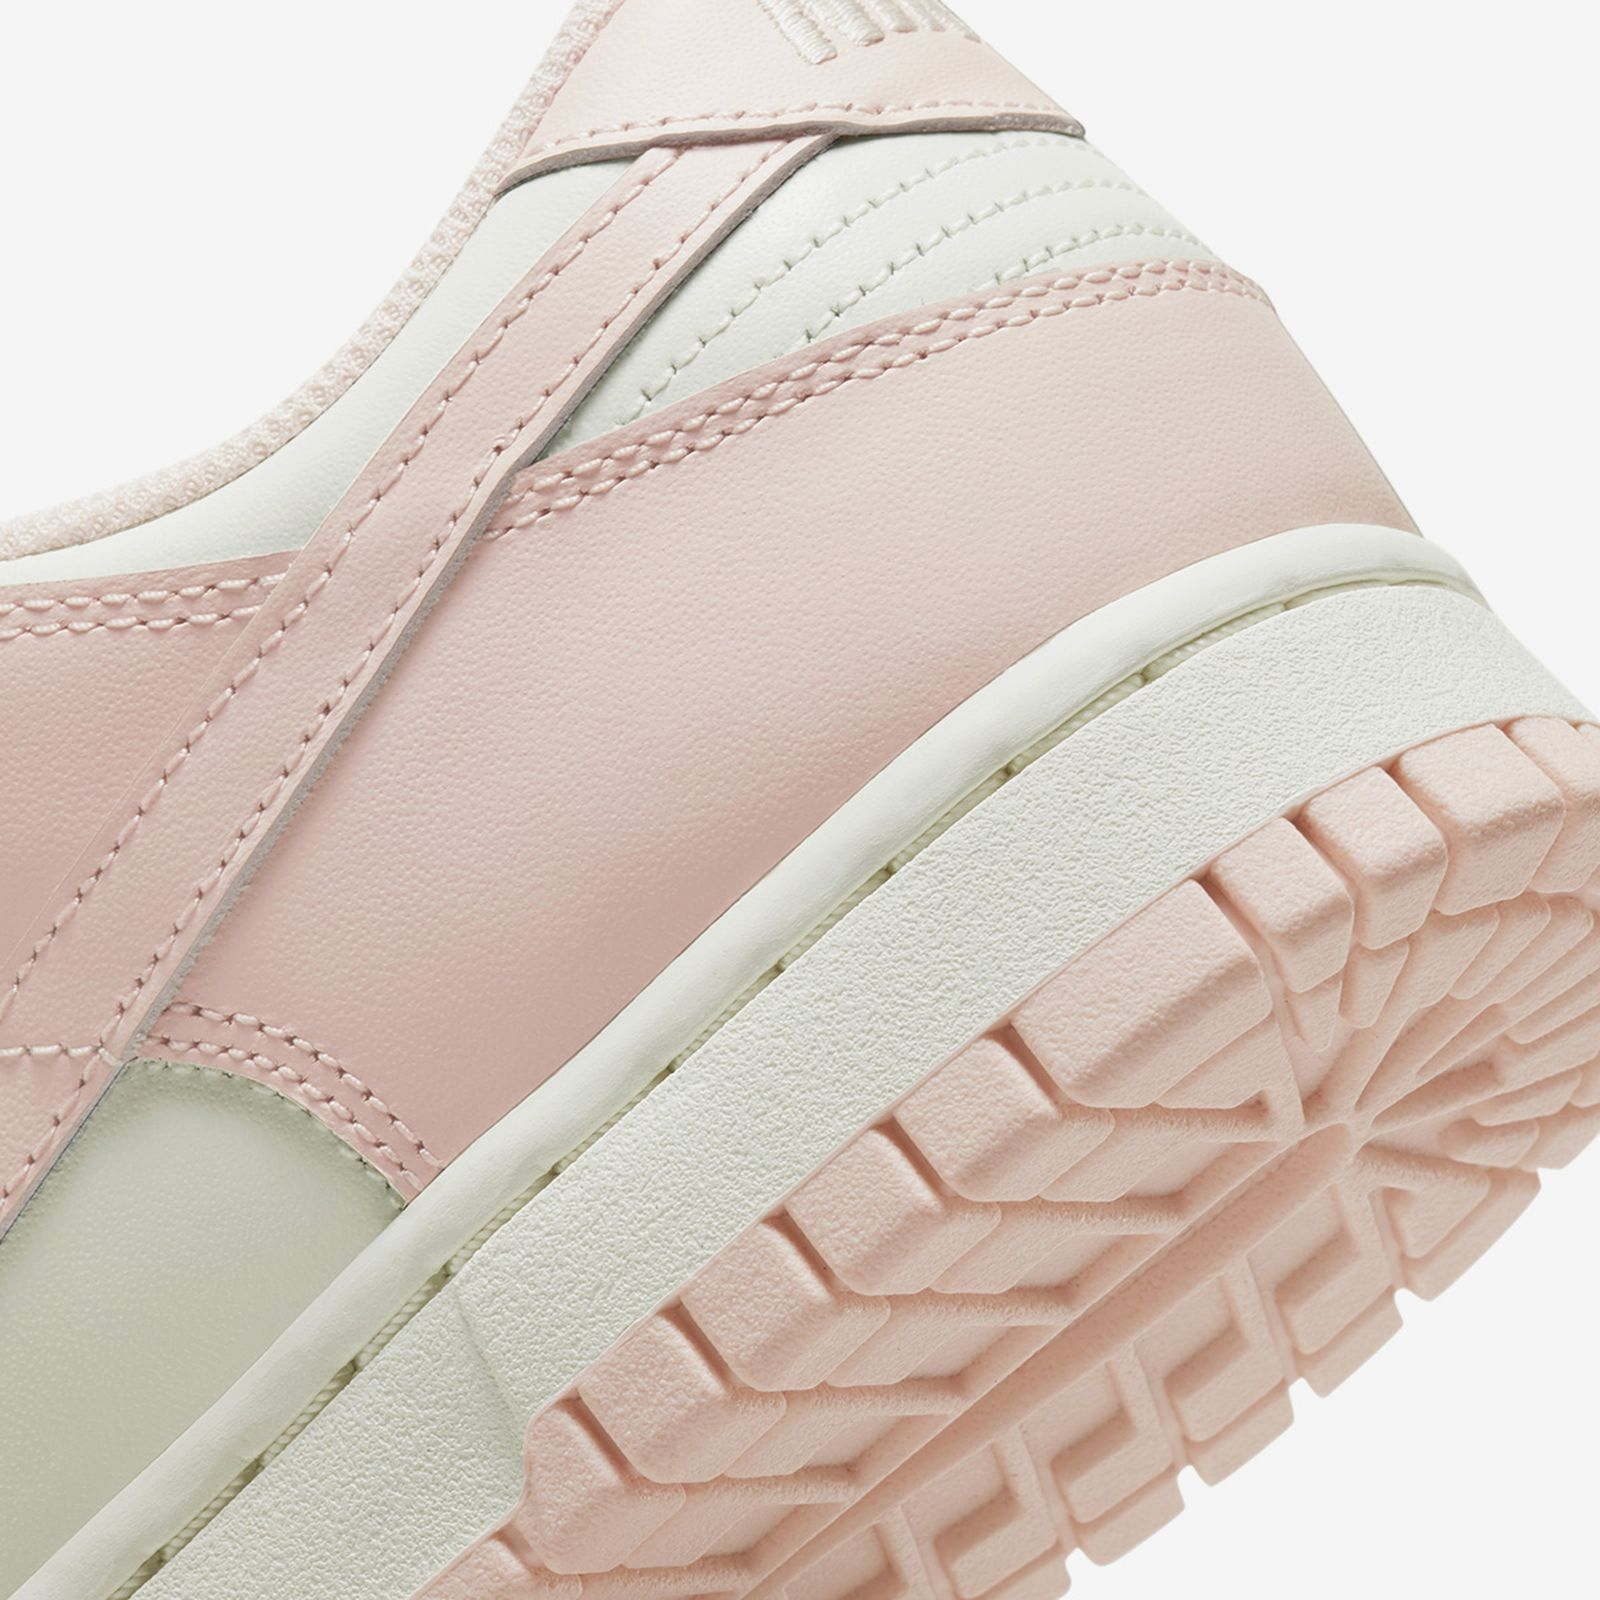 nike-dunk-spring-2021-release-date-price-1-30